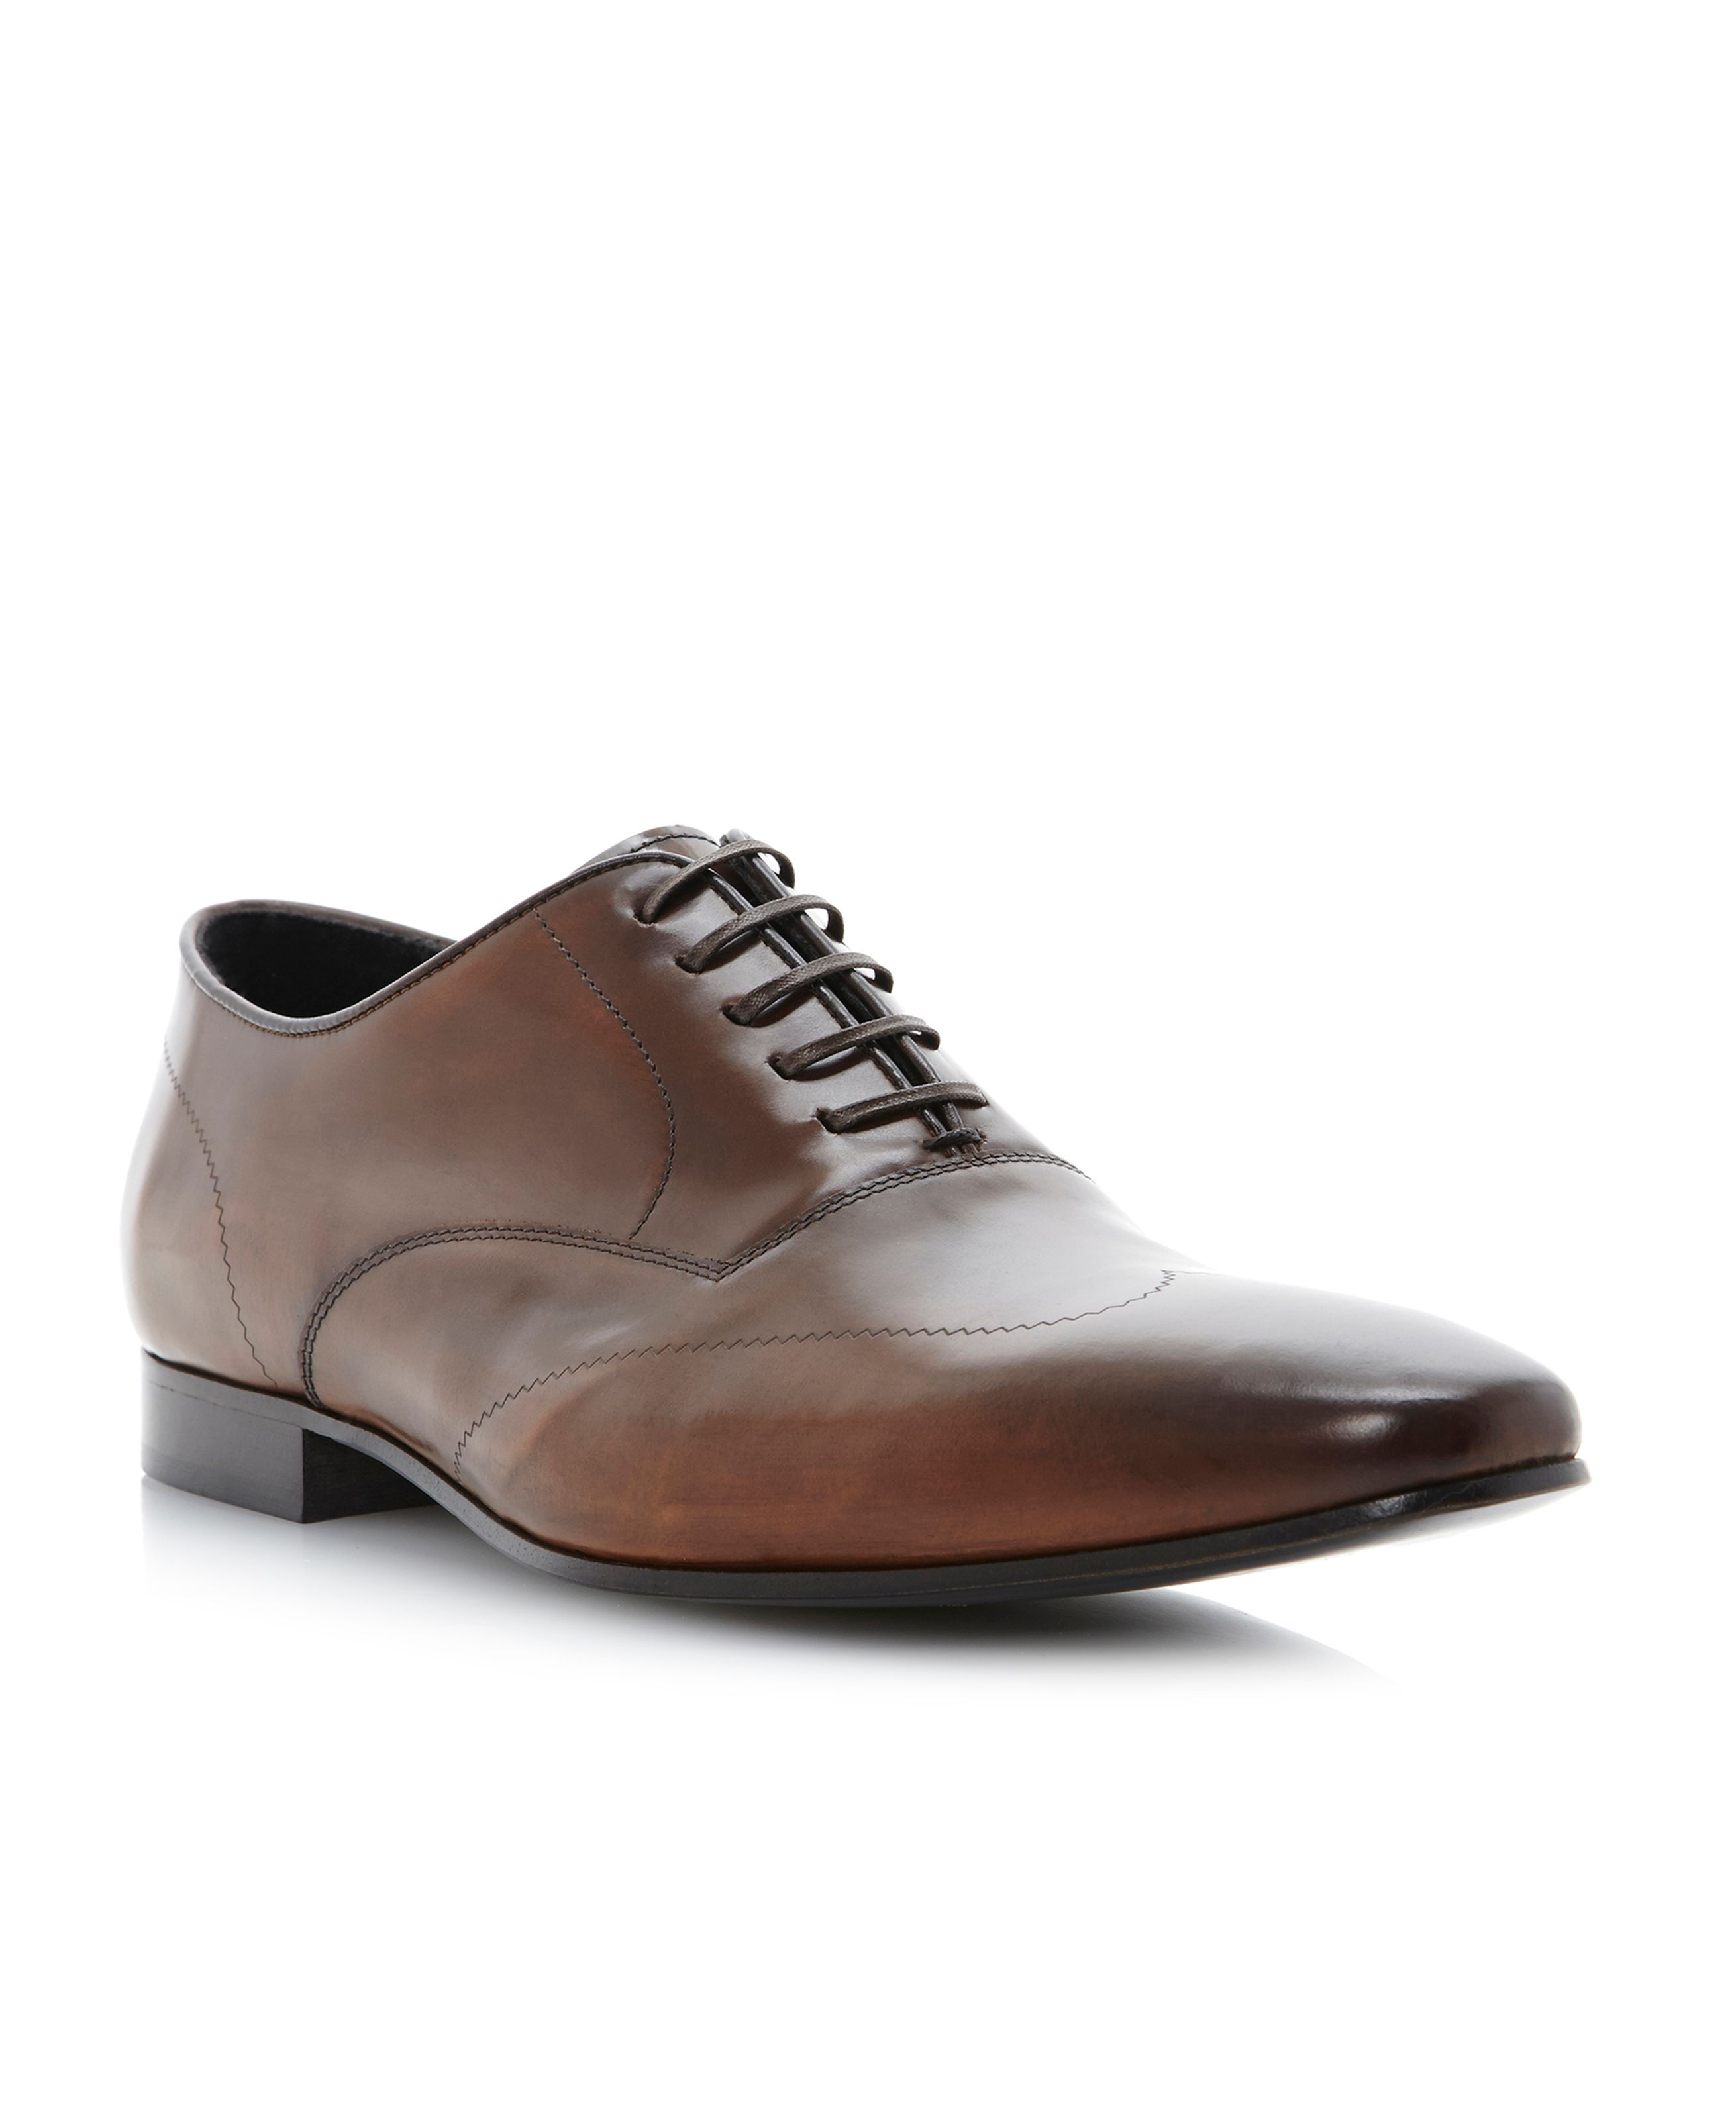 Aldershot laser etched wingtip shoes